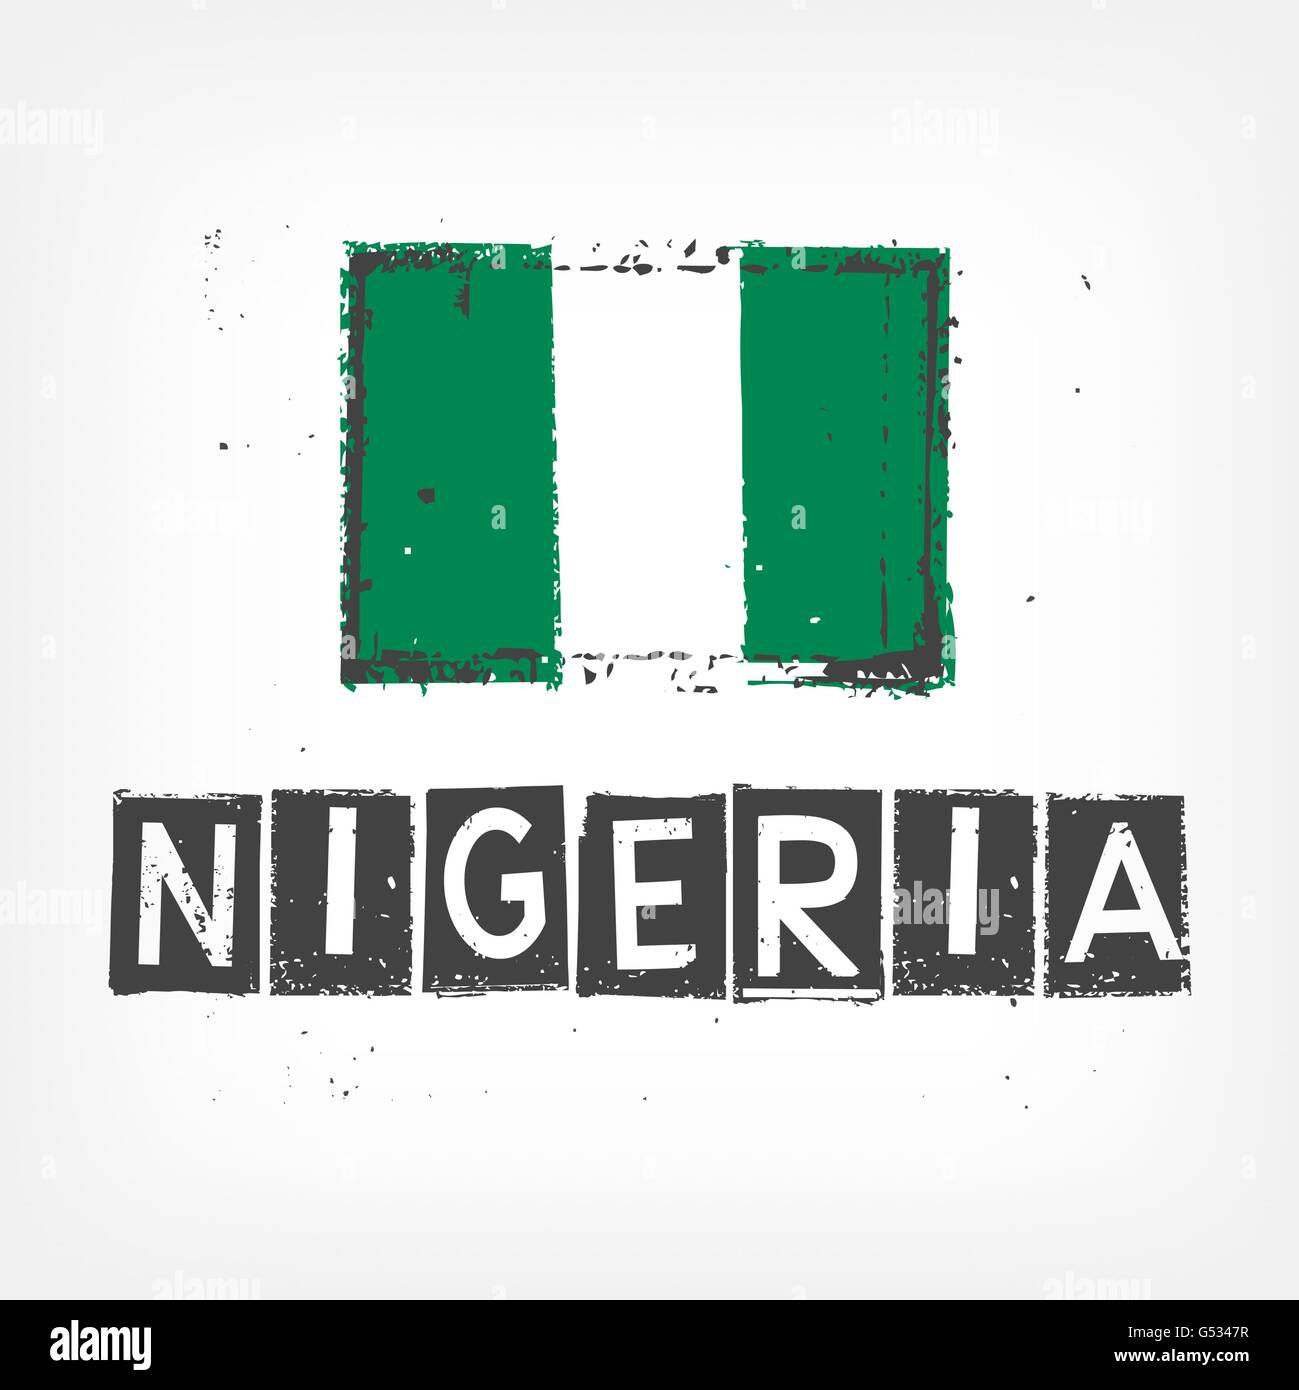 Nigeria flag stylized - Stock Vector